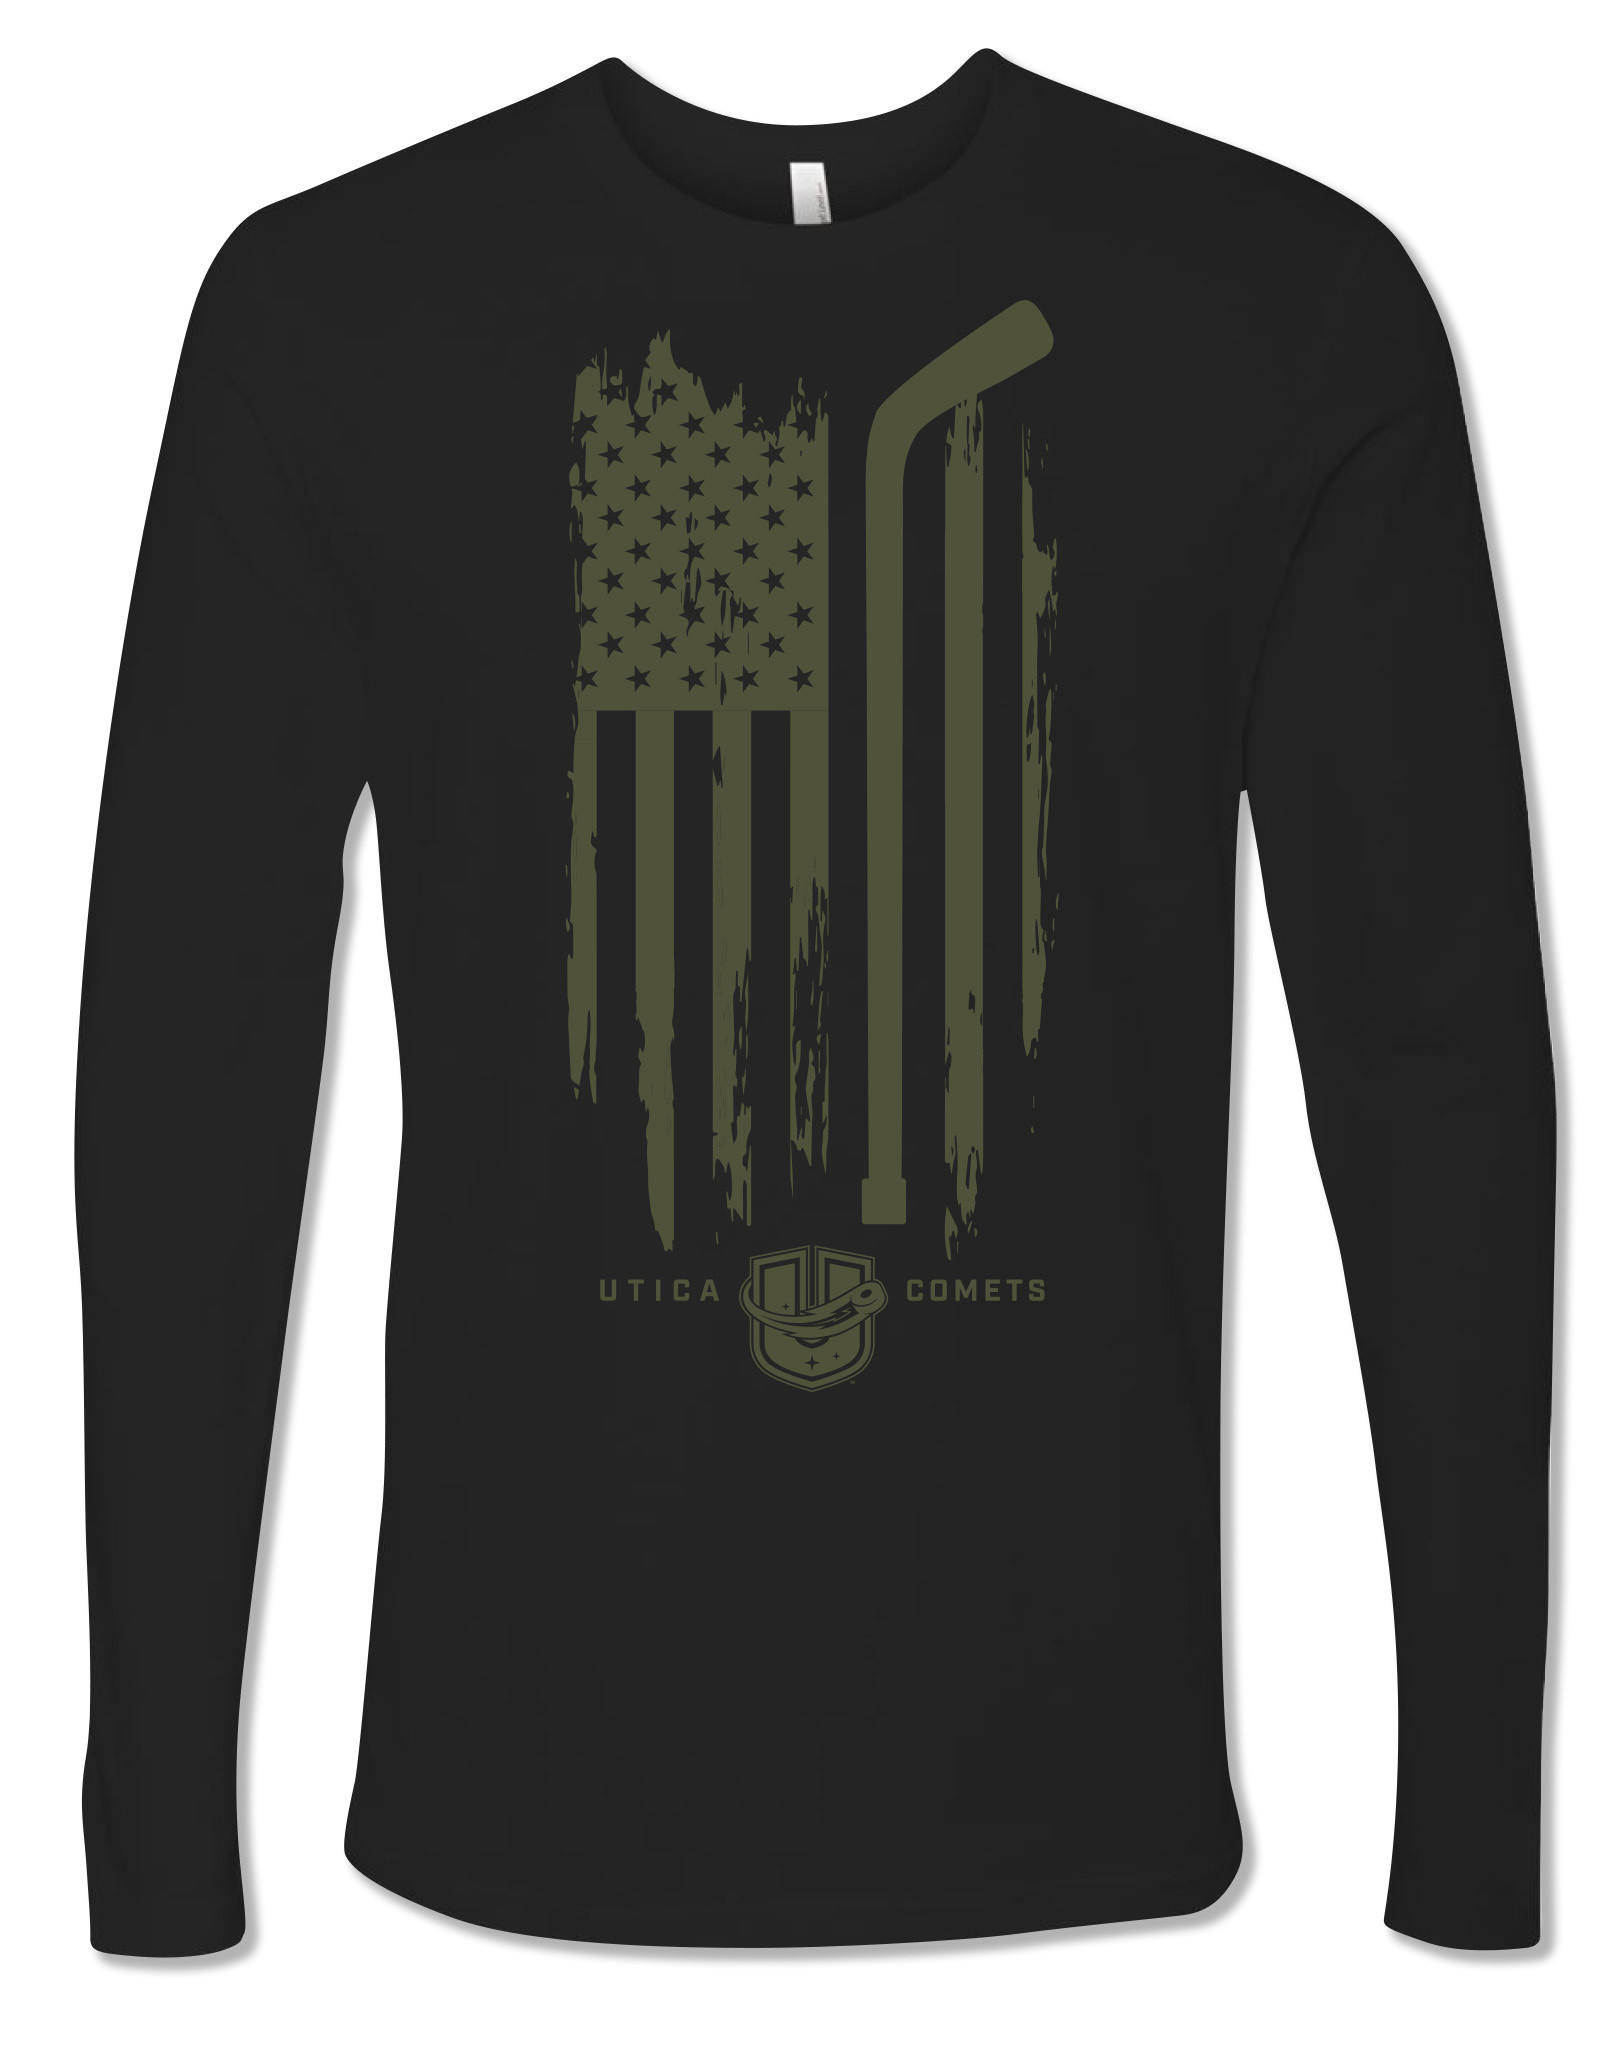 Utica Comets Veteran's Day Long Sleeve Shirt